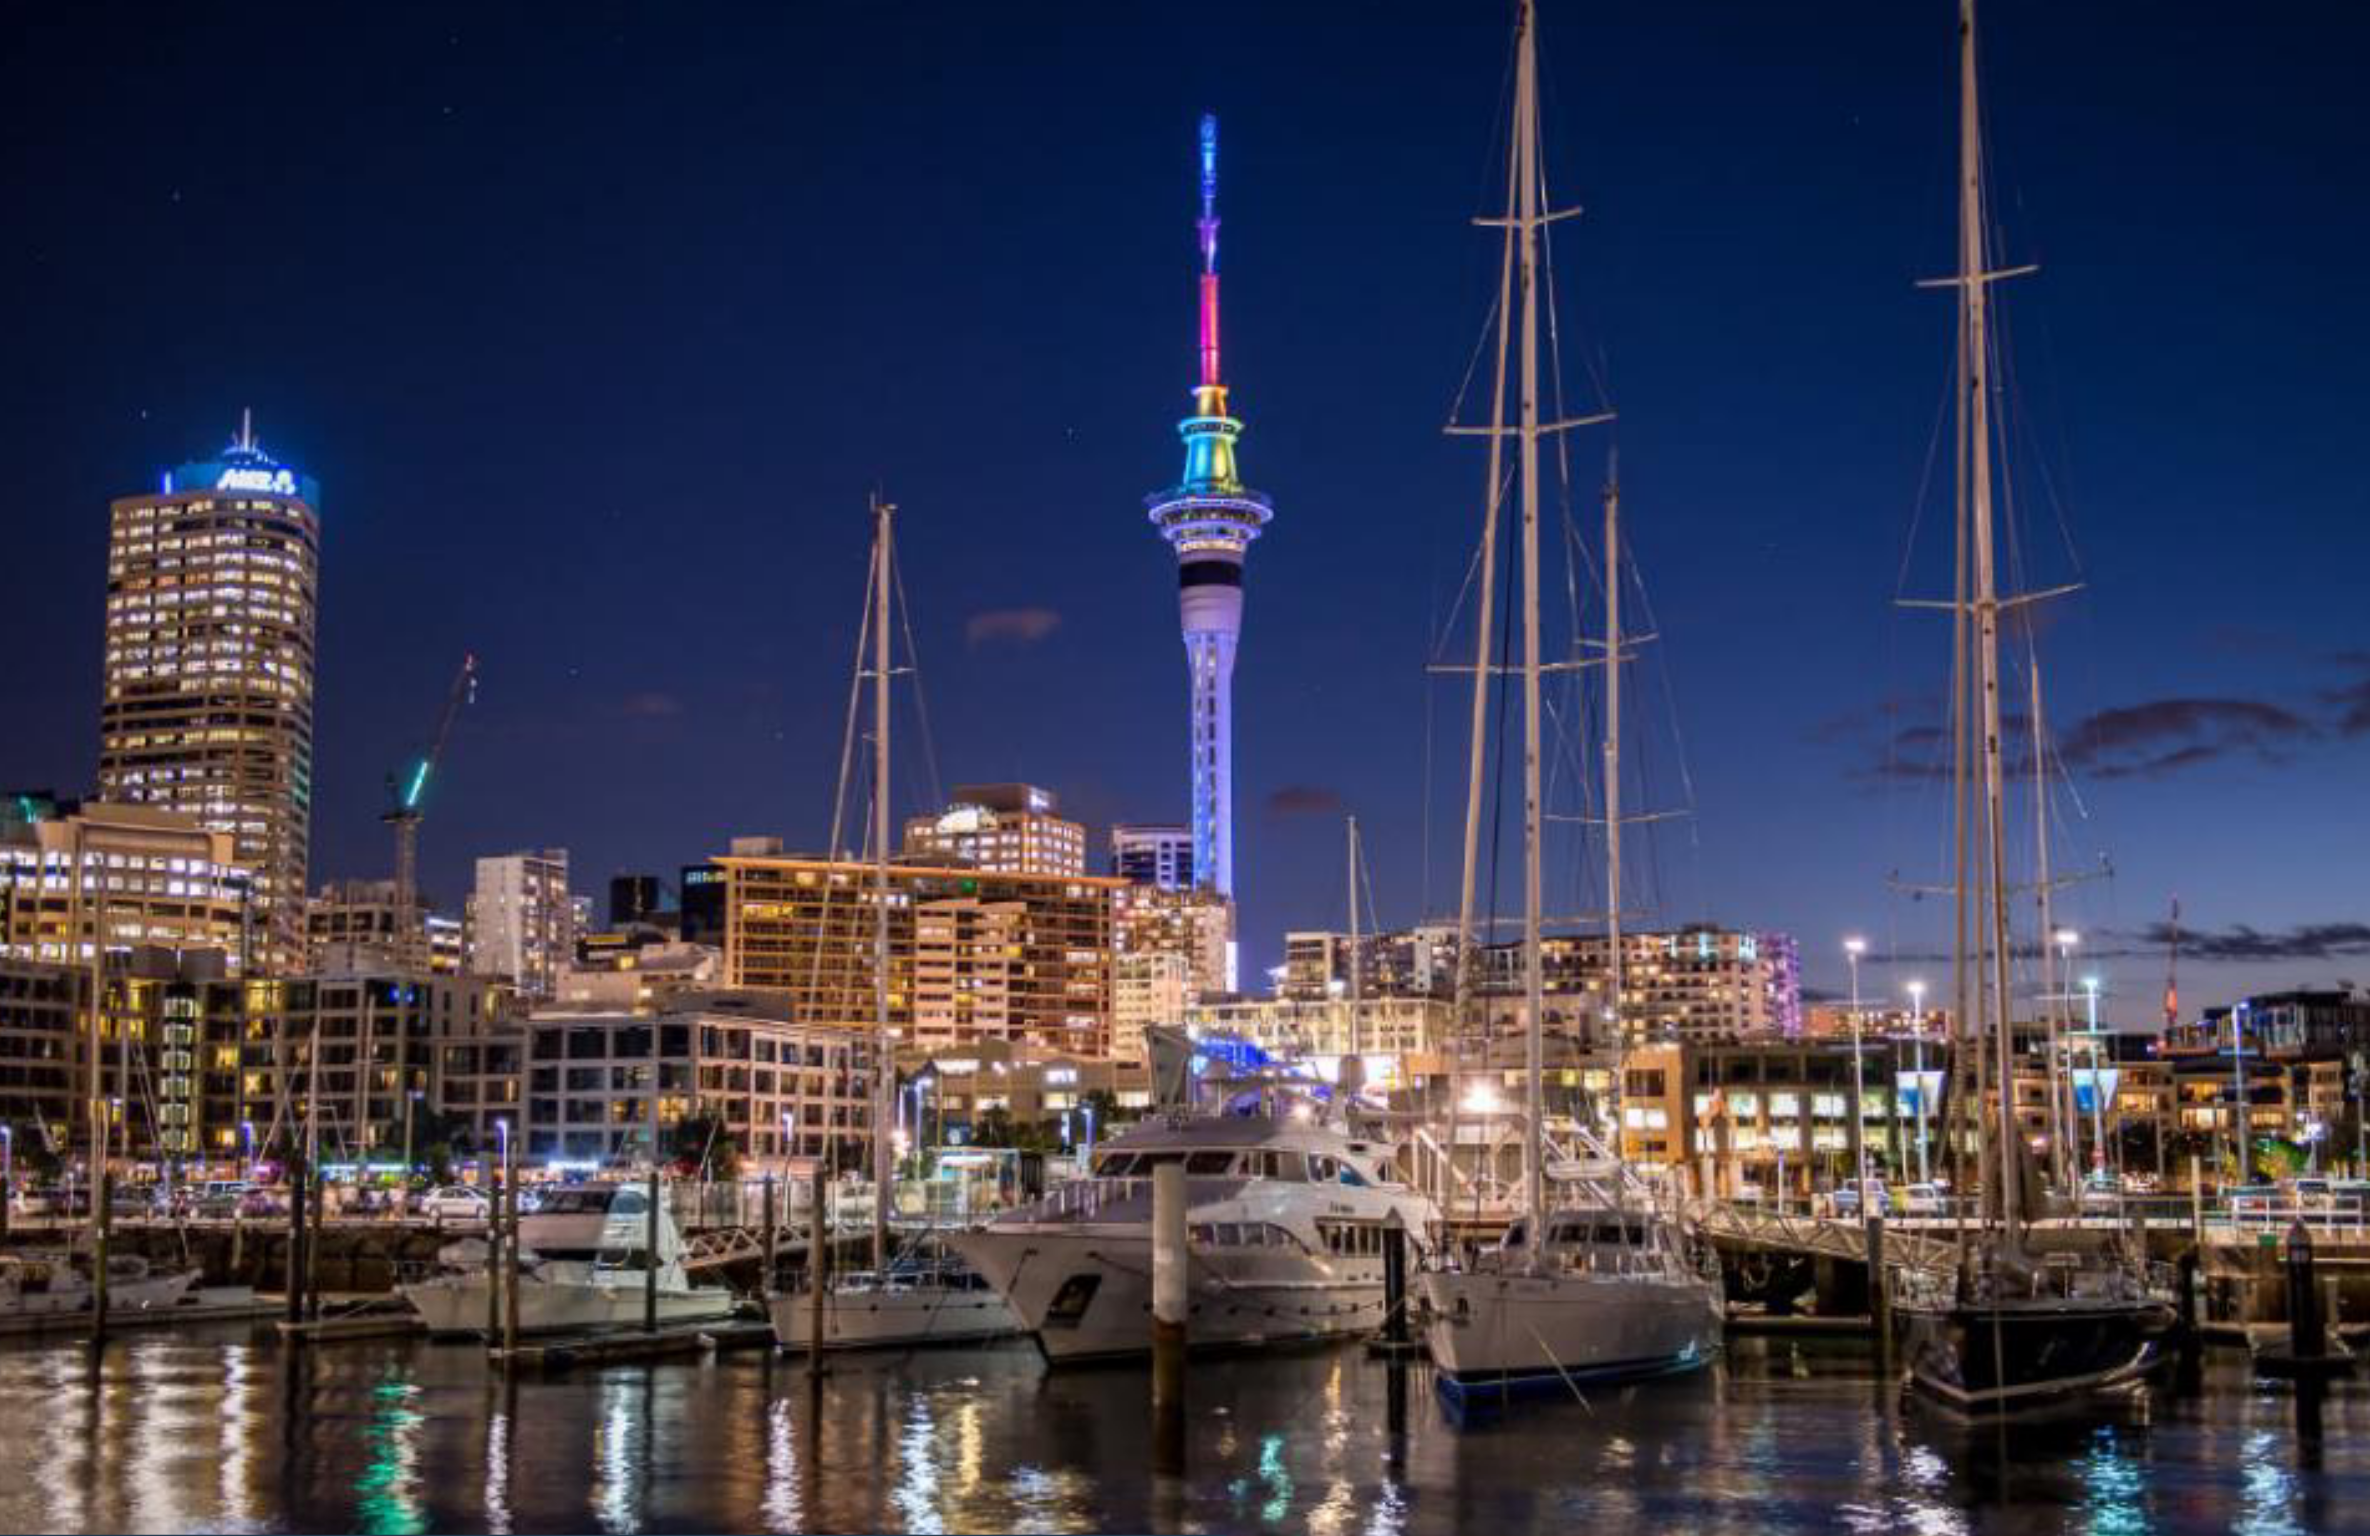 Sentiment Analysis: Auckland Brand